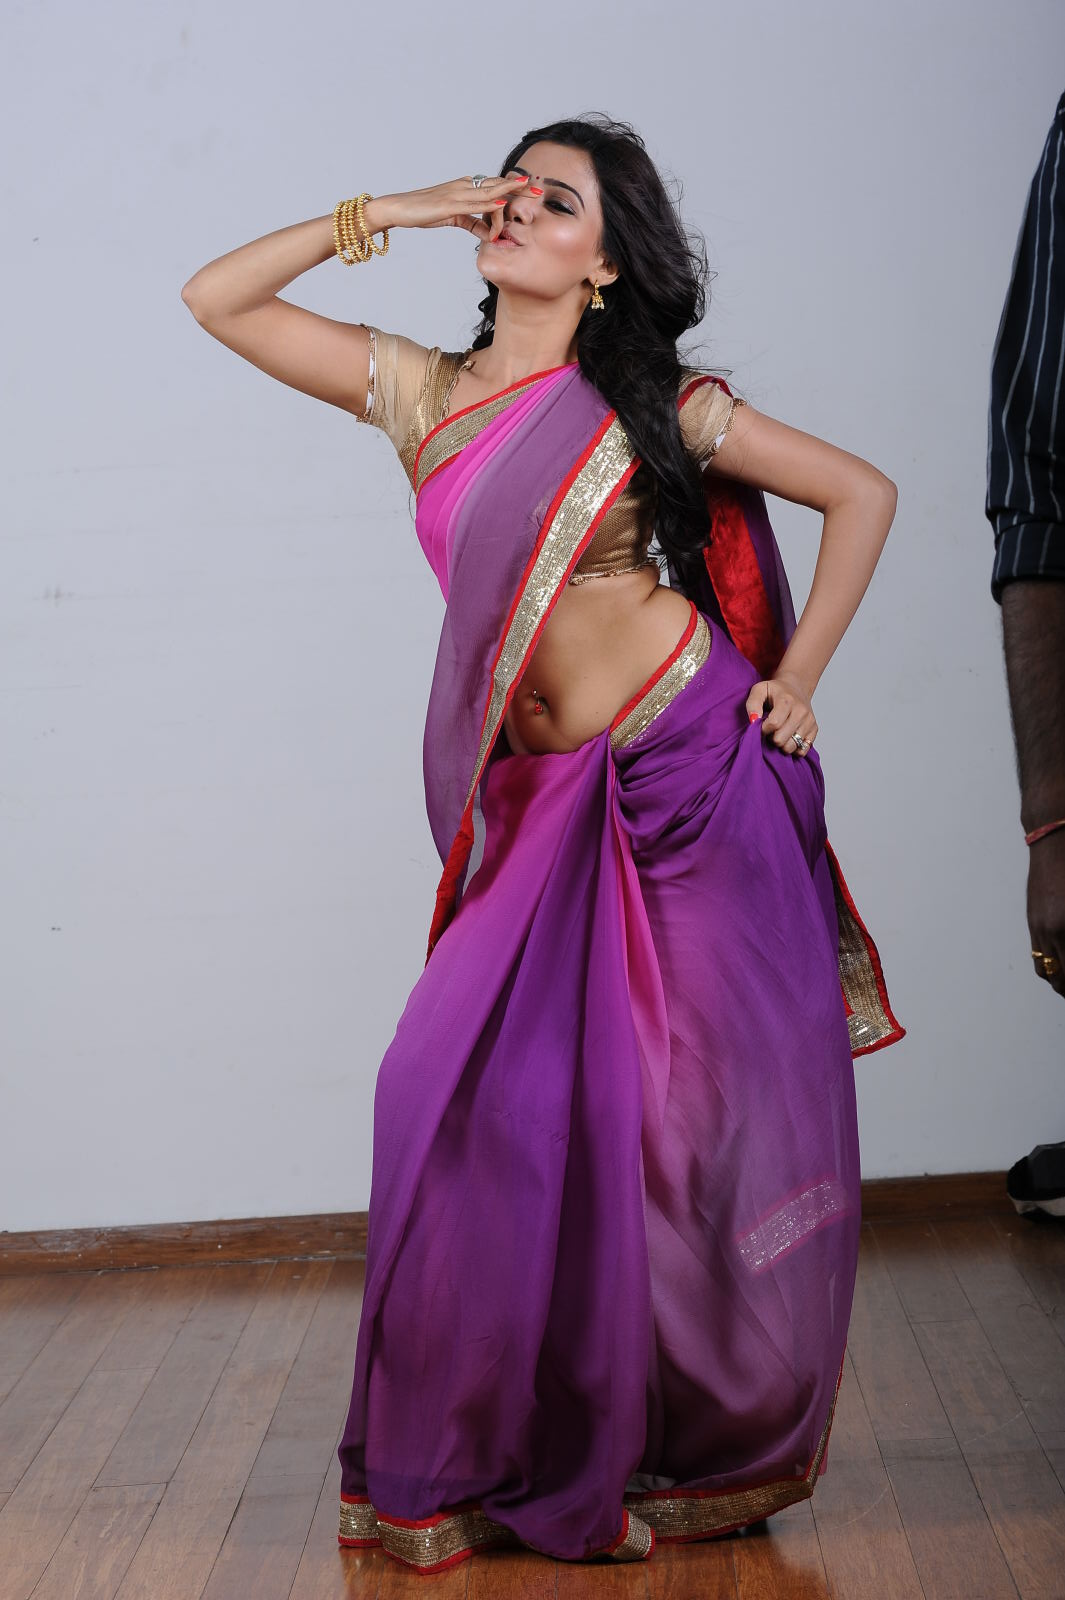 gorgeous Samantha ruth prabhu in purple saree latest photos in saree